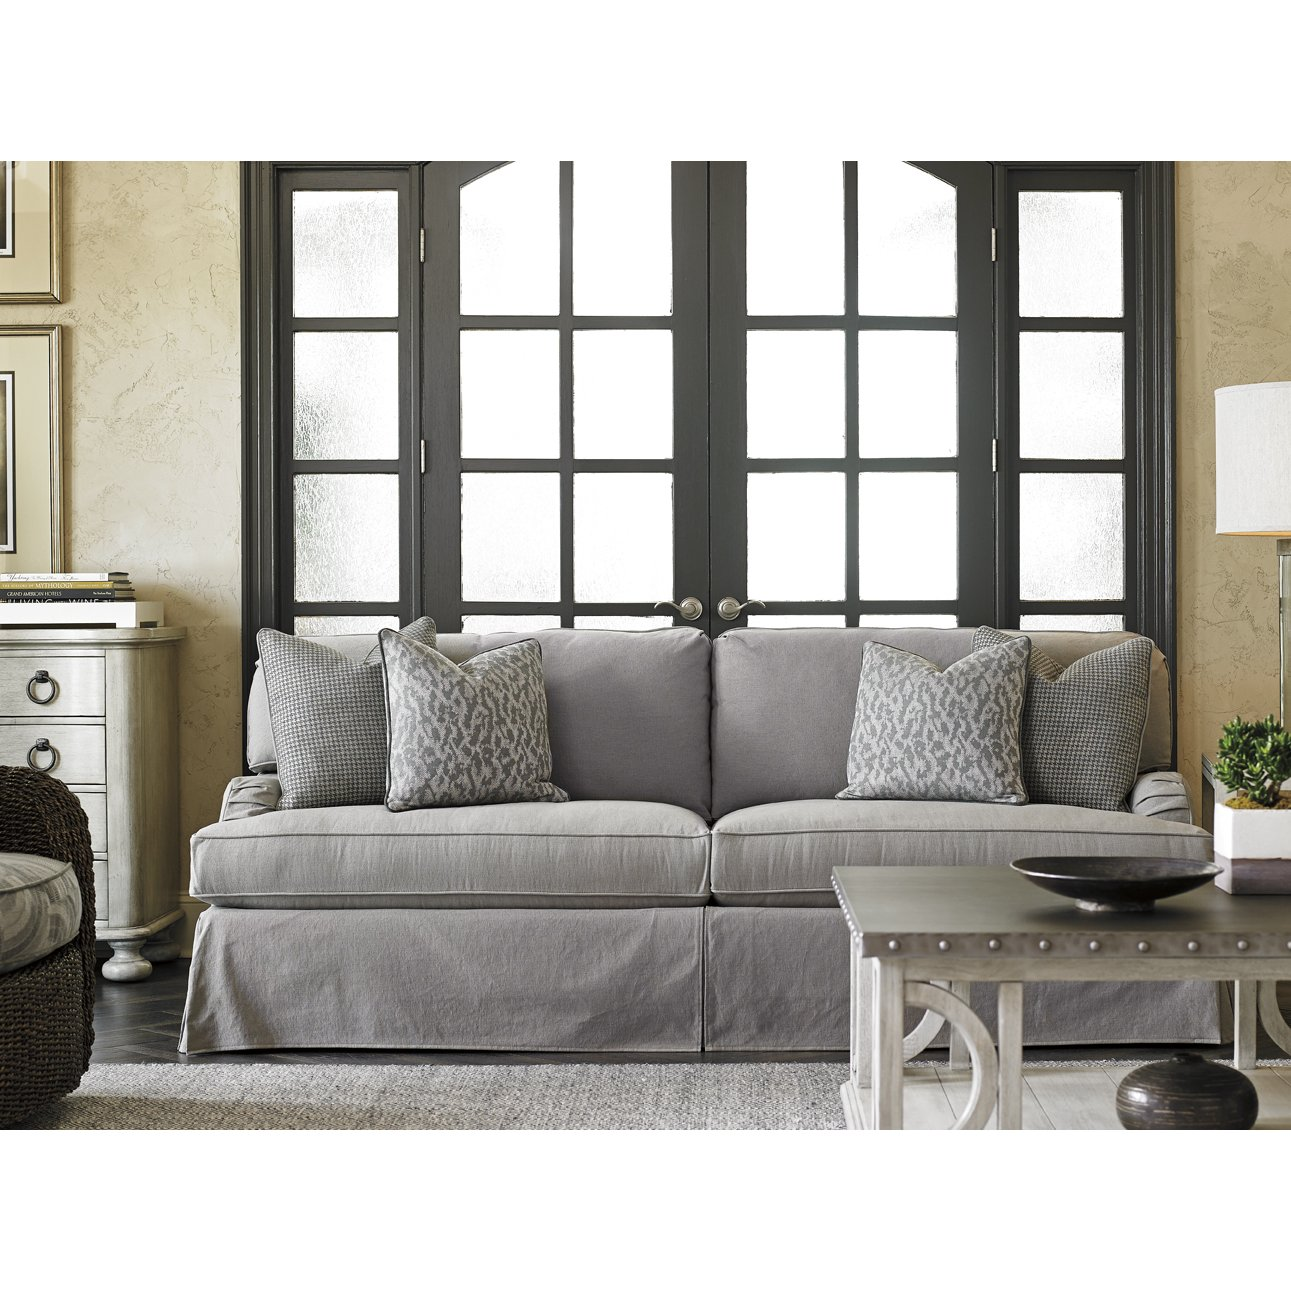 Overstock Warehouse Cincinnati | Furniture Stores in Lexington Ky | Lexington Overstock